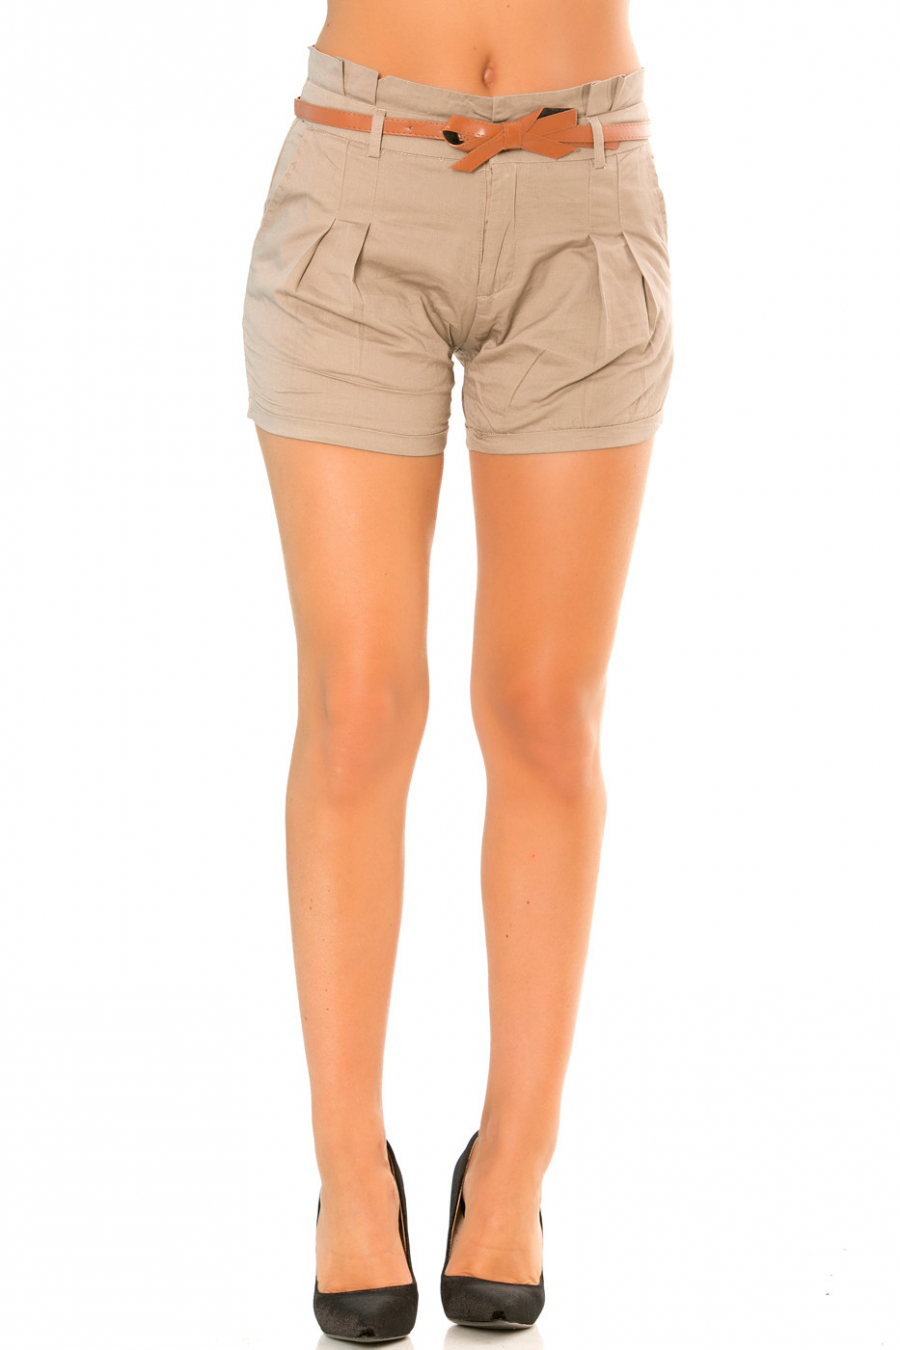 Taupe shorts with bow tie belt PO273D